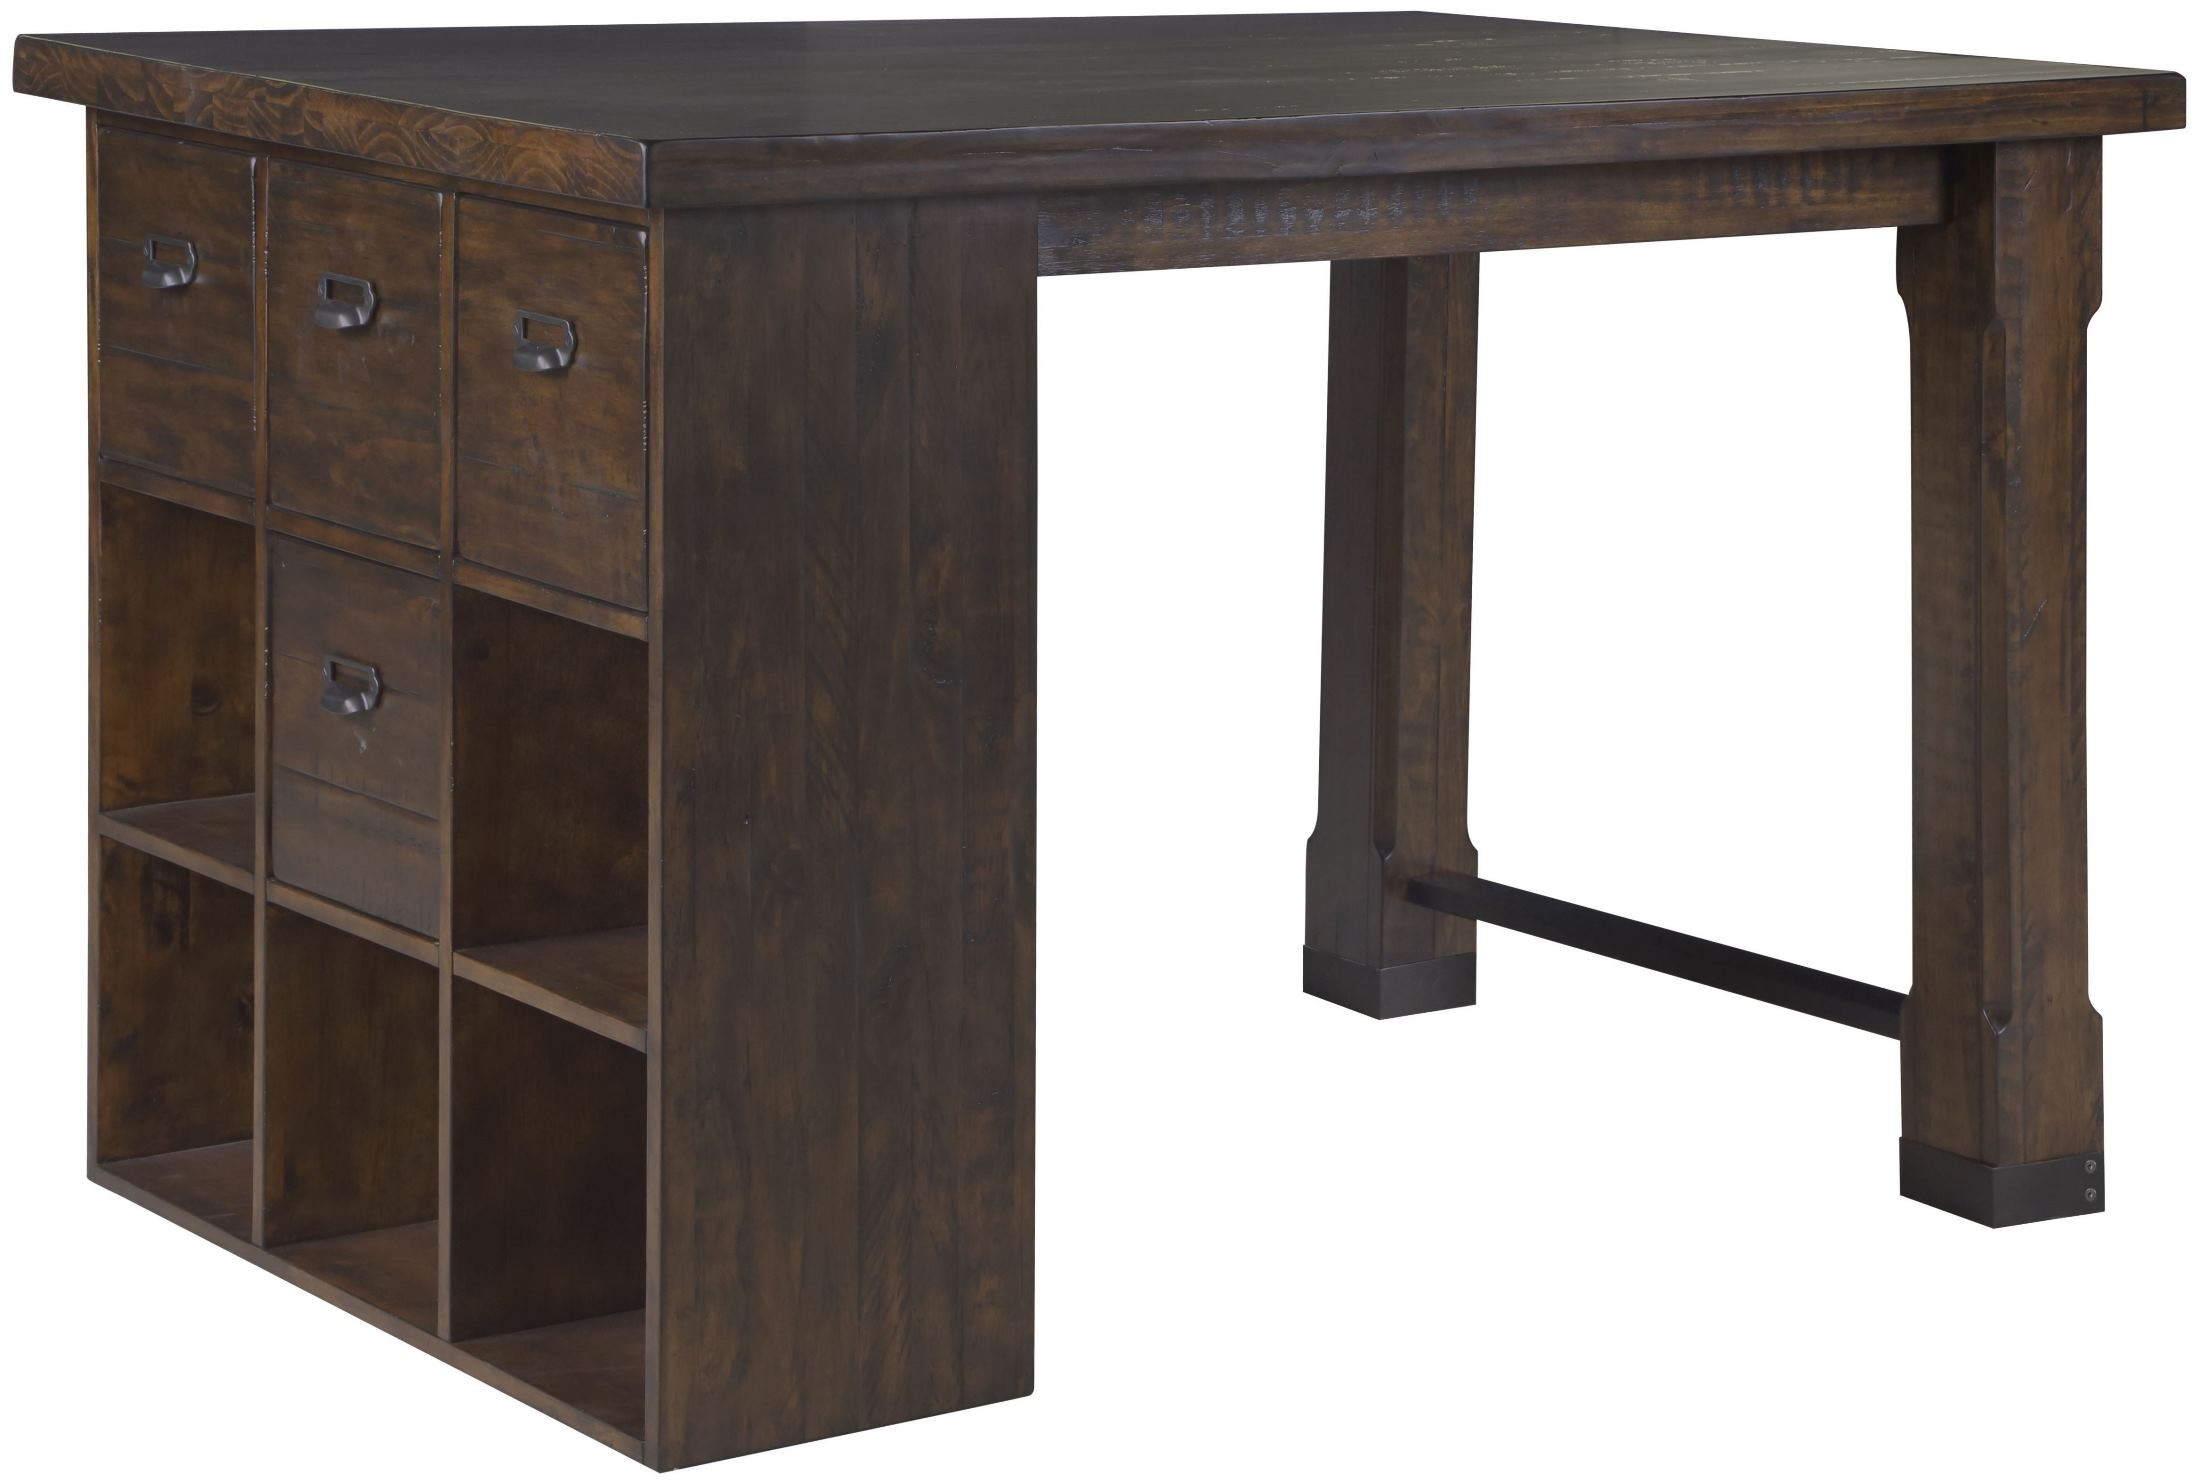 Pine Hill Rustic Pine Counter Height Desk, MAG-H3561-06T-06B ...